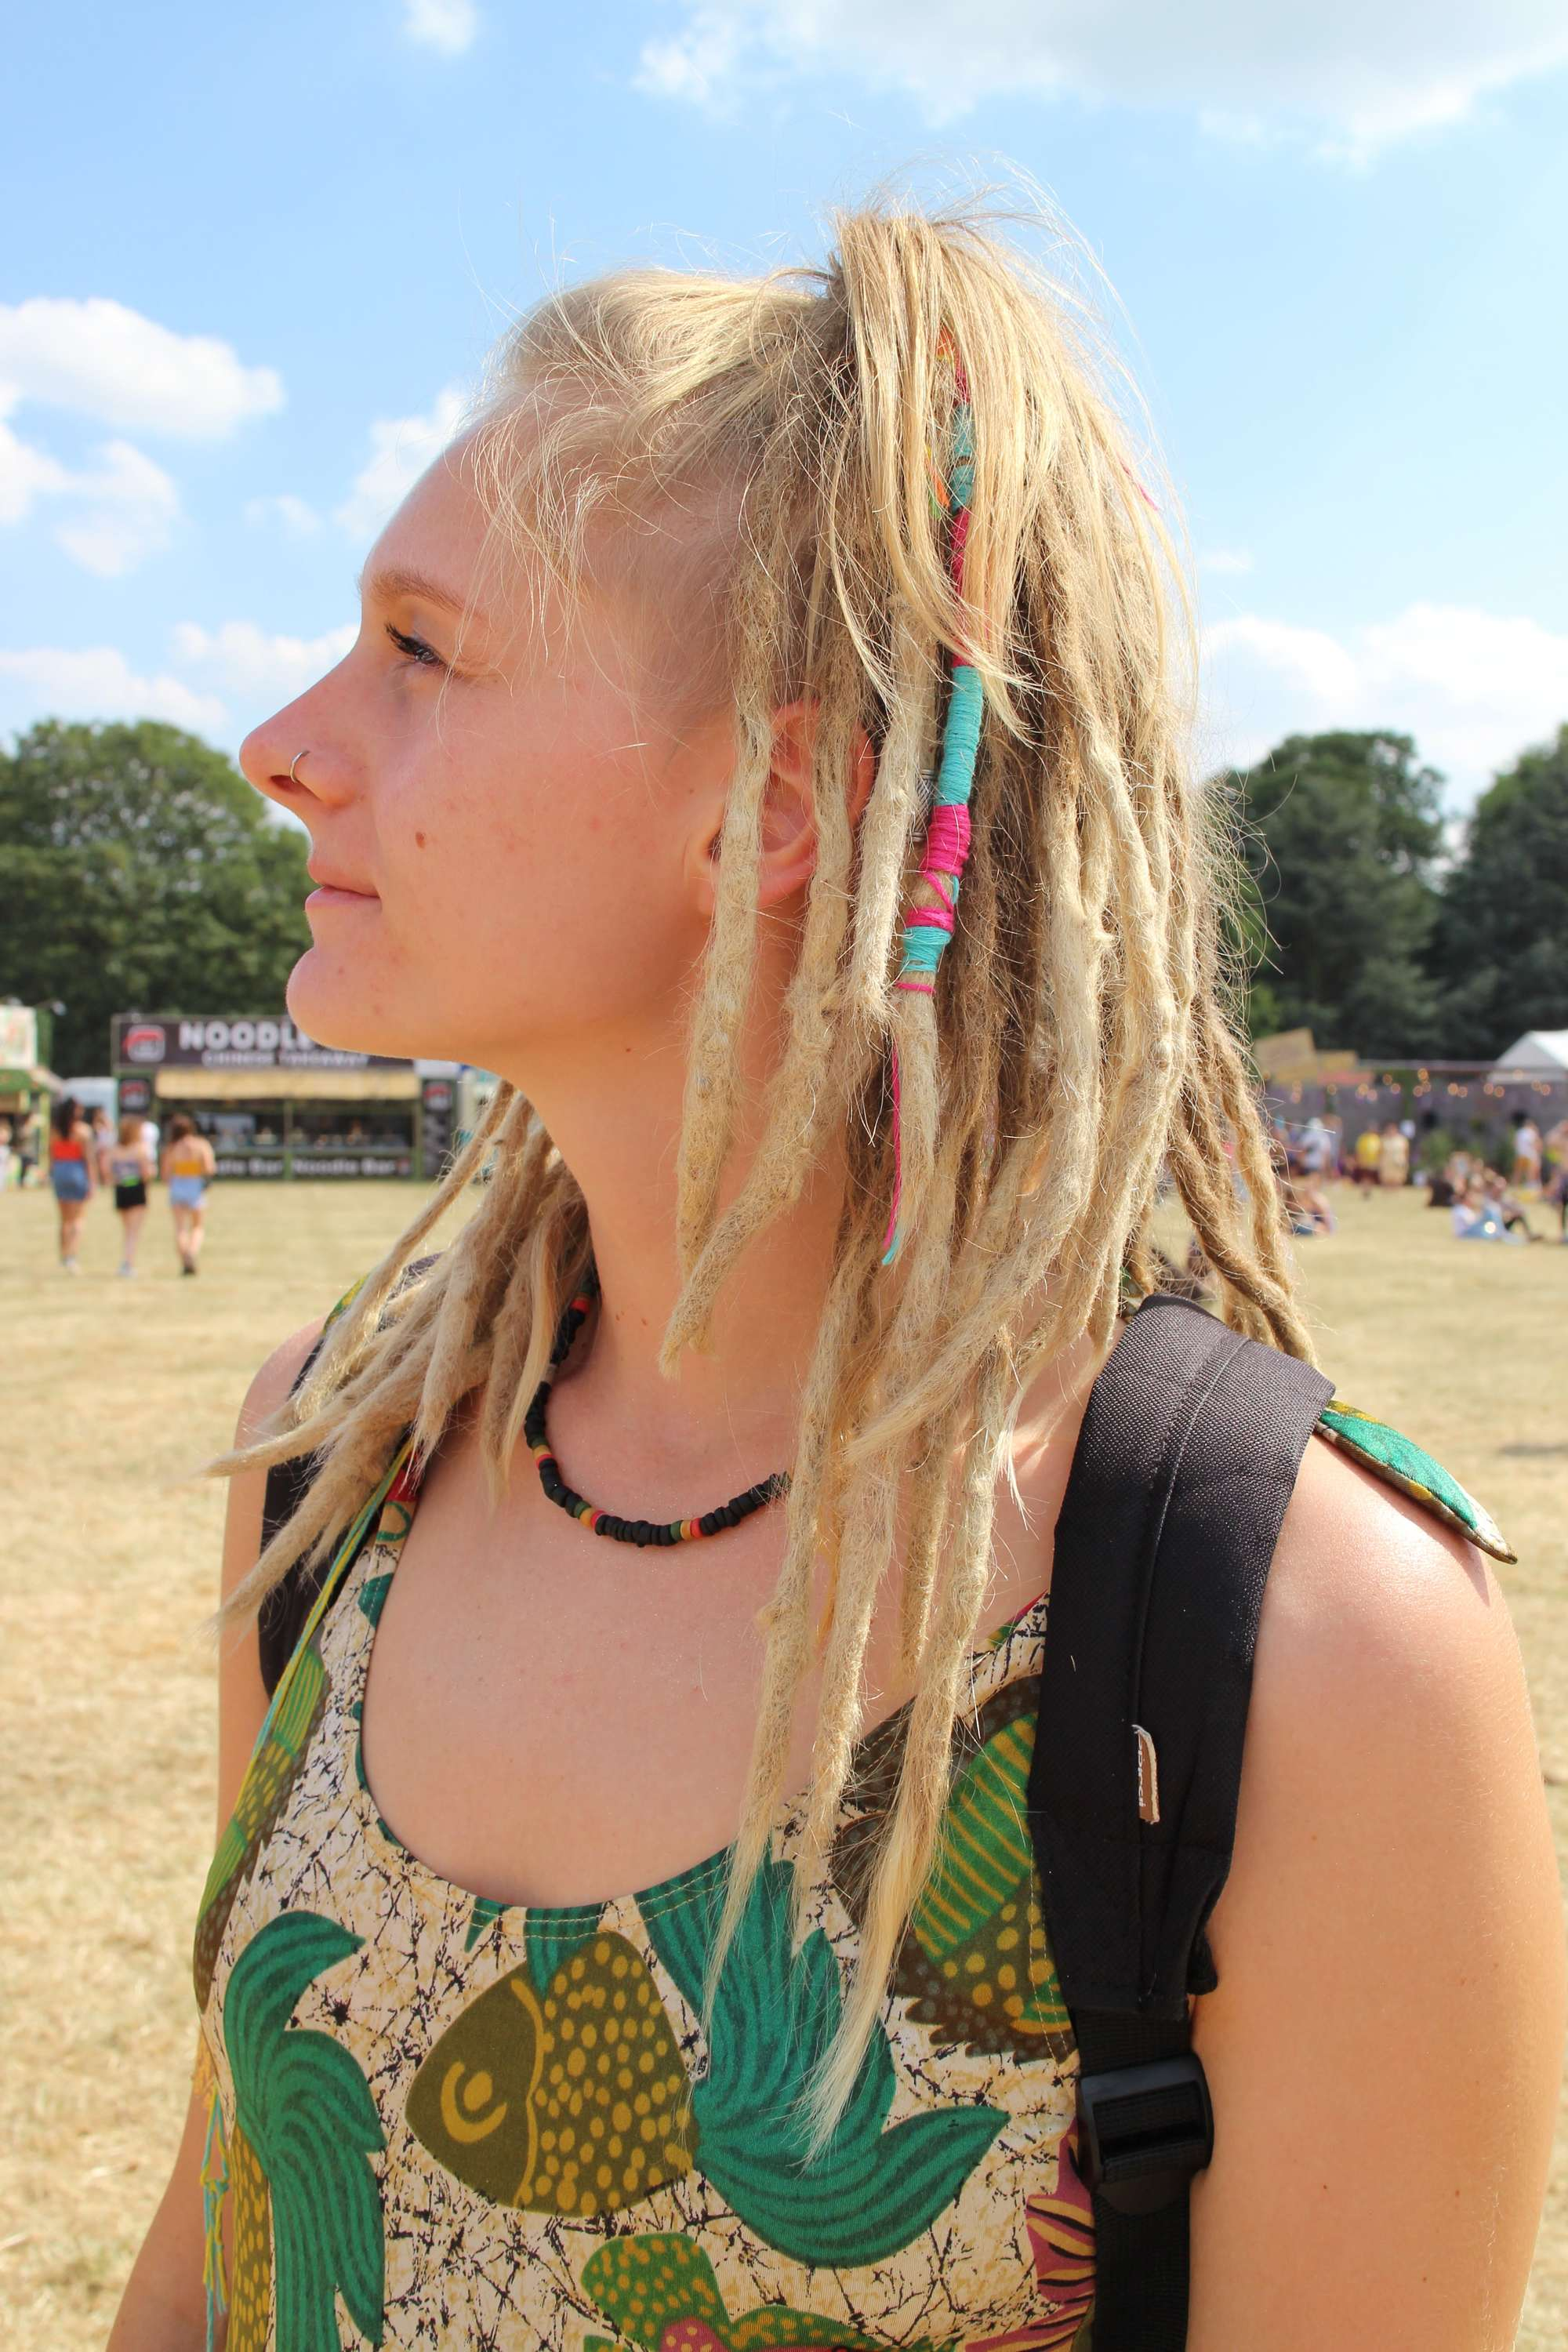 Festival hair accessories: Side view of blonde woman with hair in high ponytail with some strands covered with a blue hair wrap